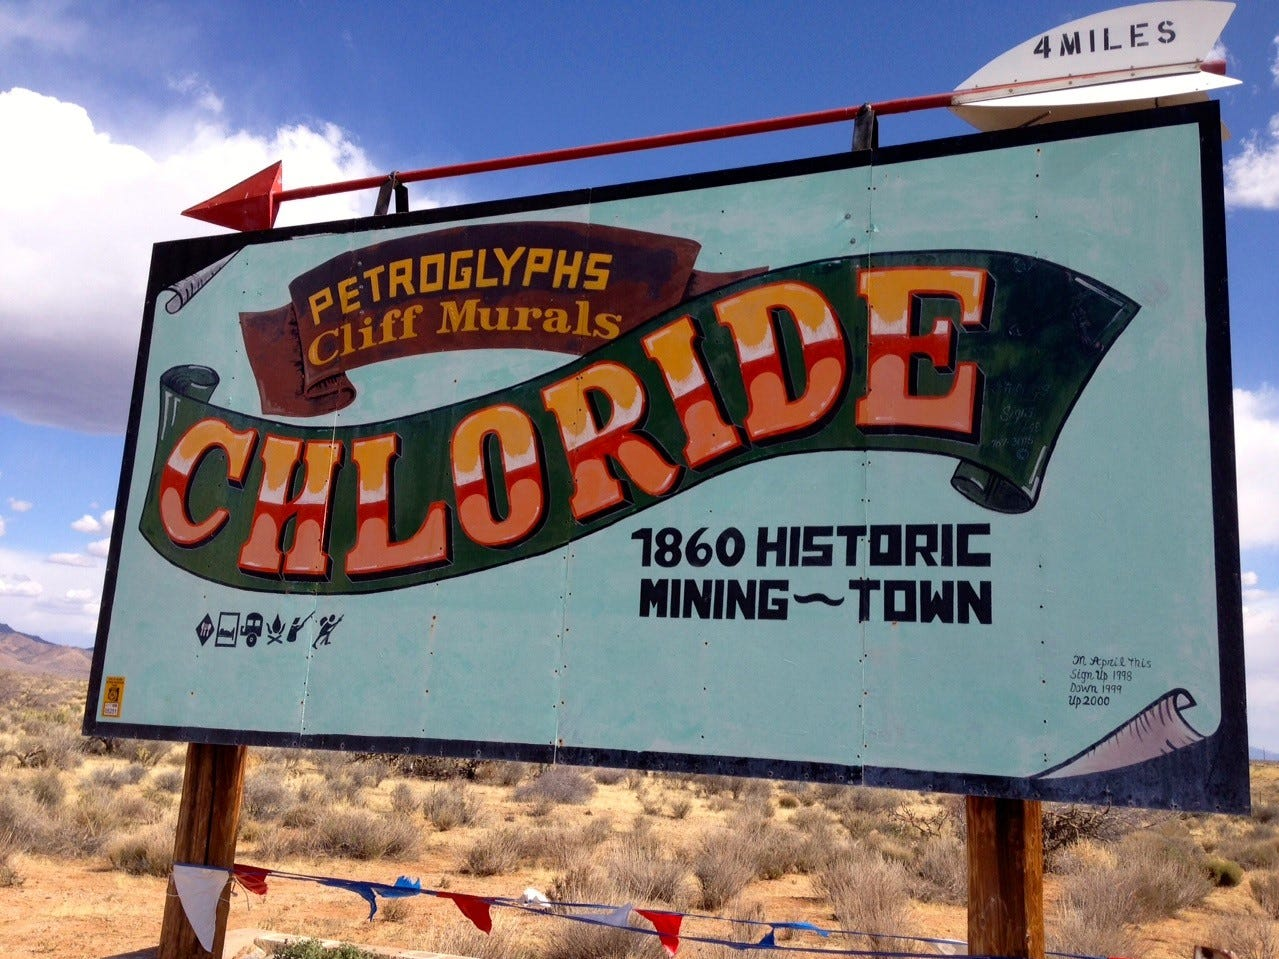 North of Kingman, Chloride is a former mining town now known for murals by artist Roy Purcell painted on the boulders outside of town.